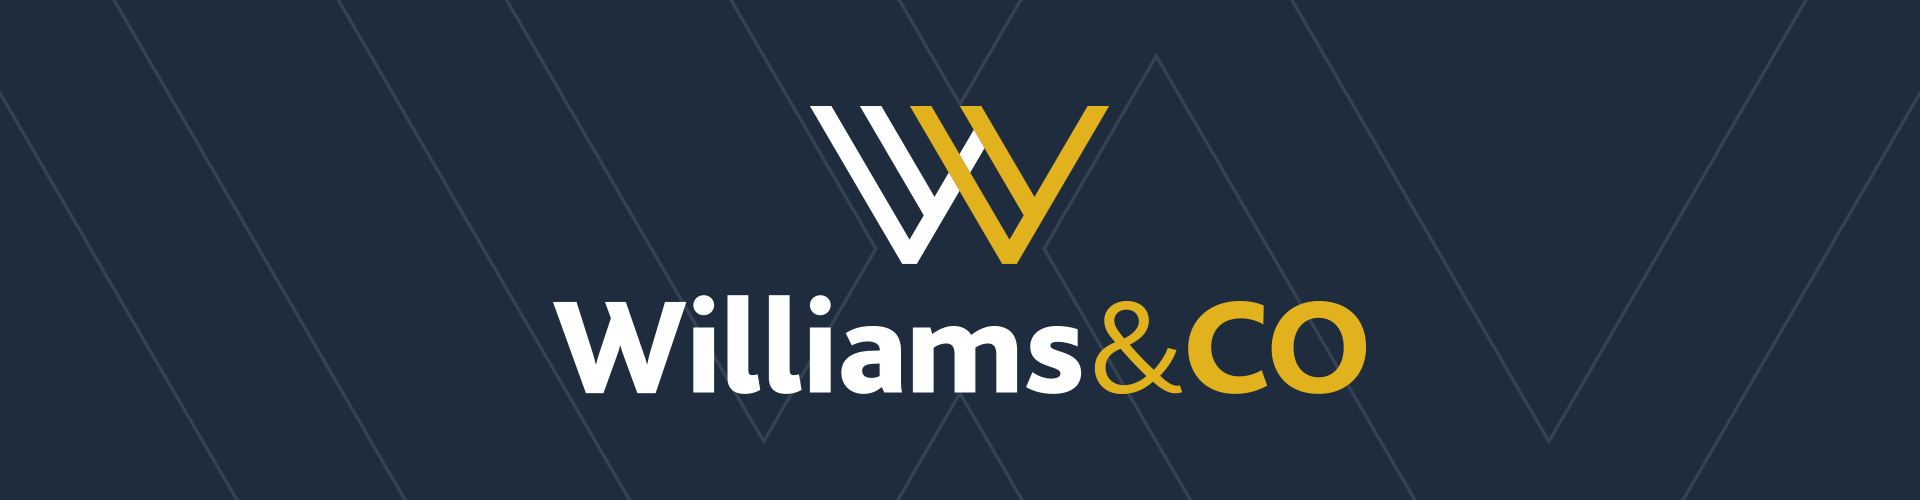 Williams Co Legal About Us Banner